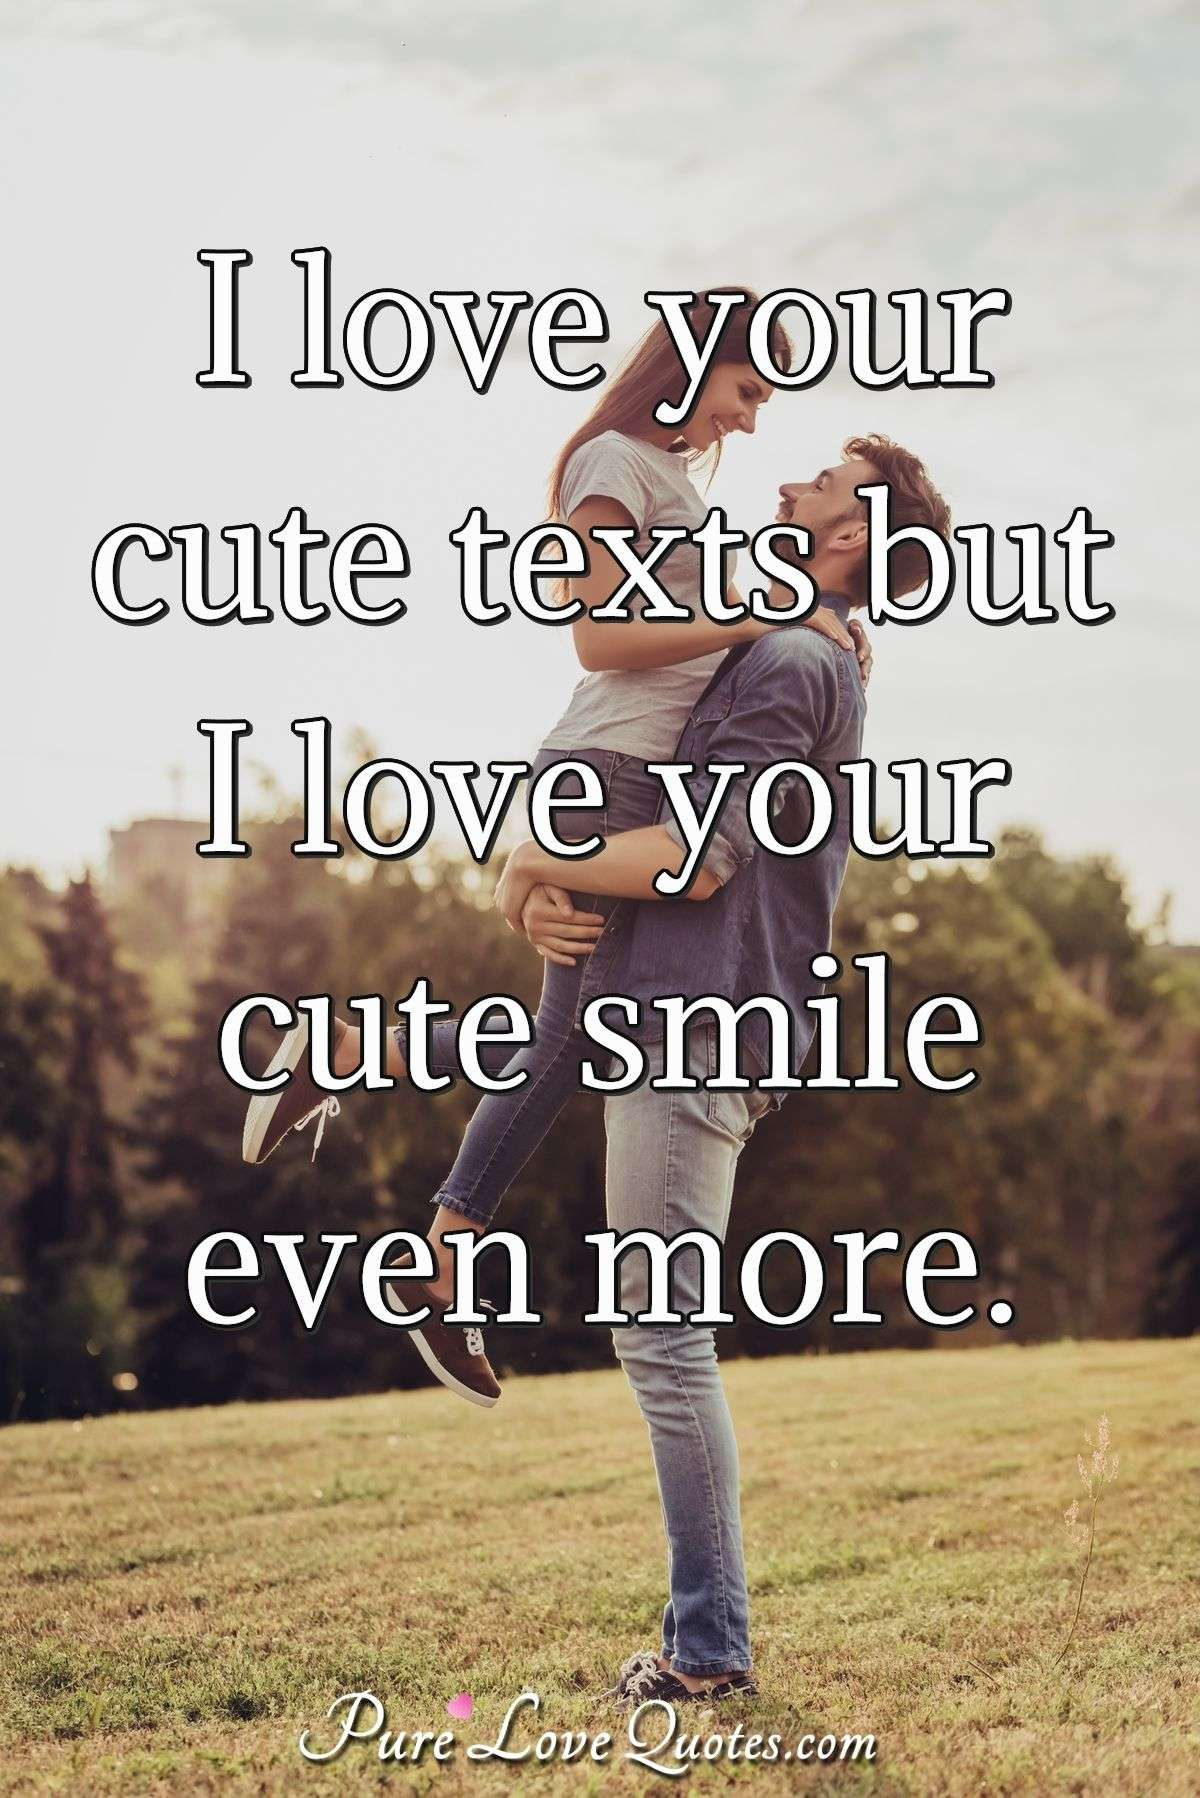 I Love Your Cute Texts But I Love Your Cute Smile Even More